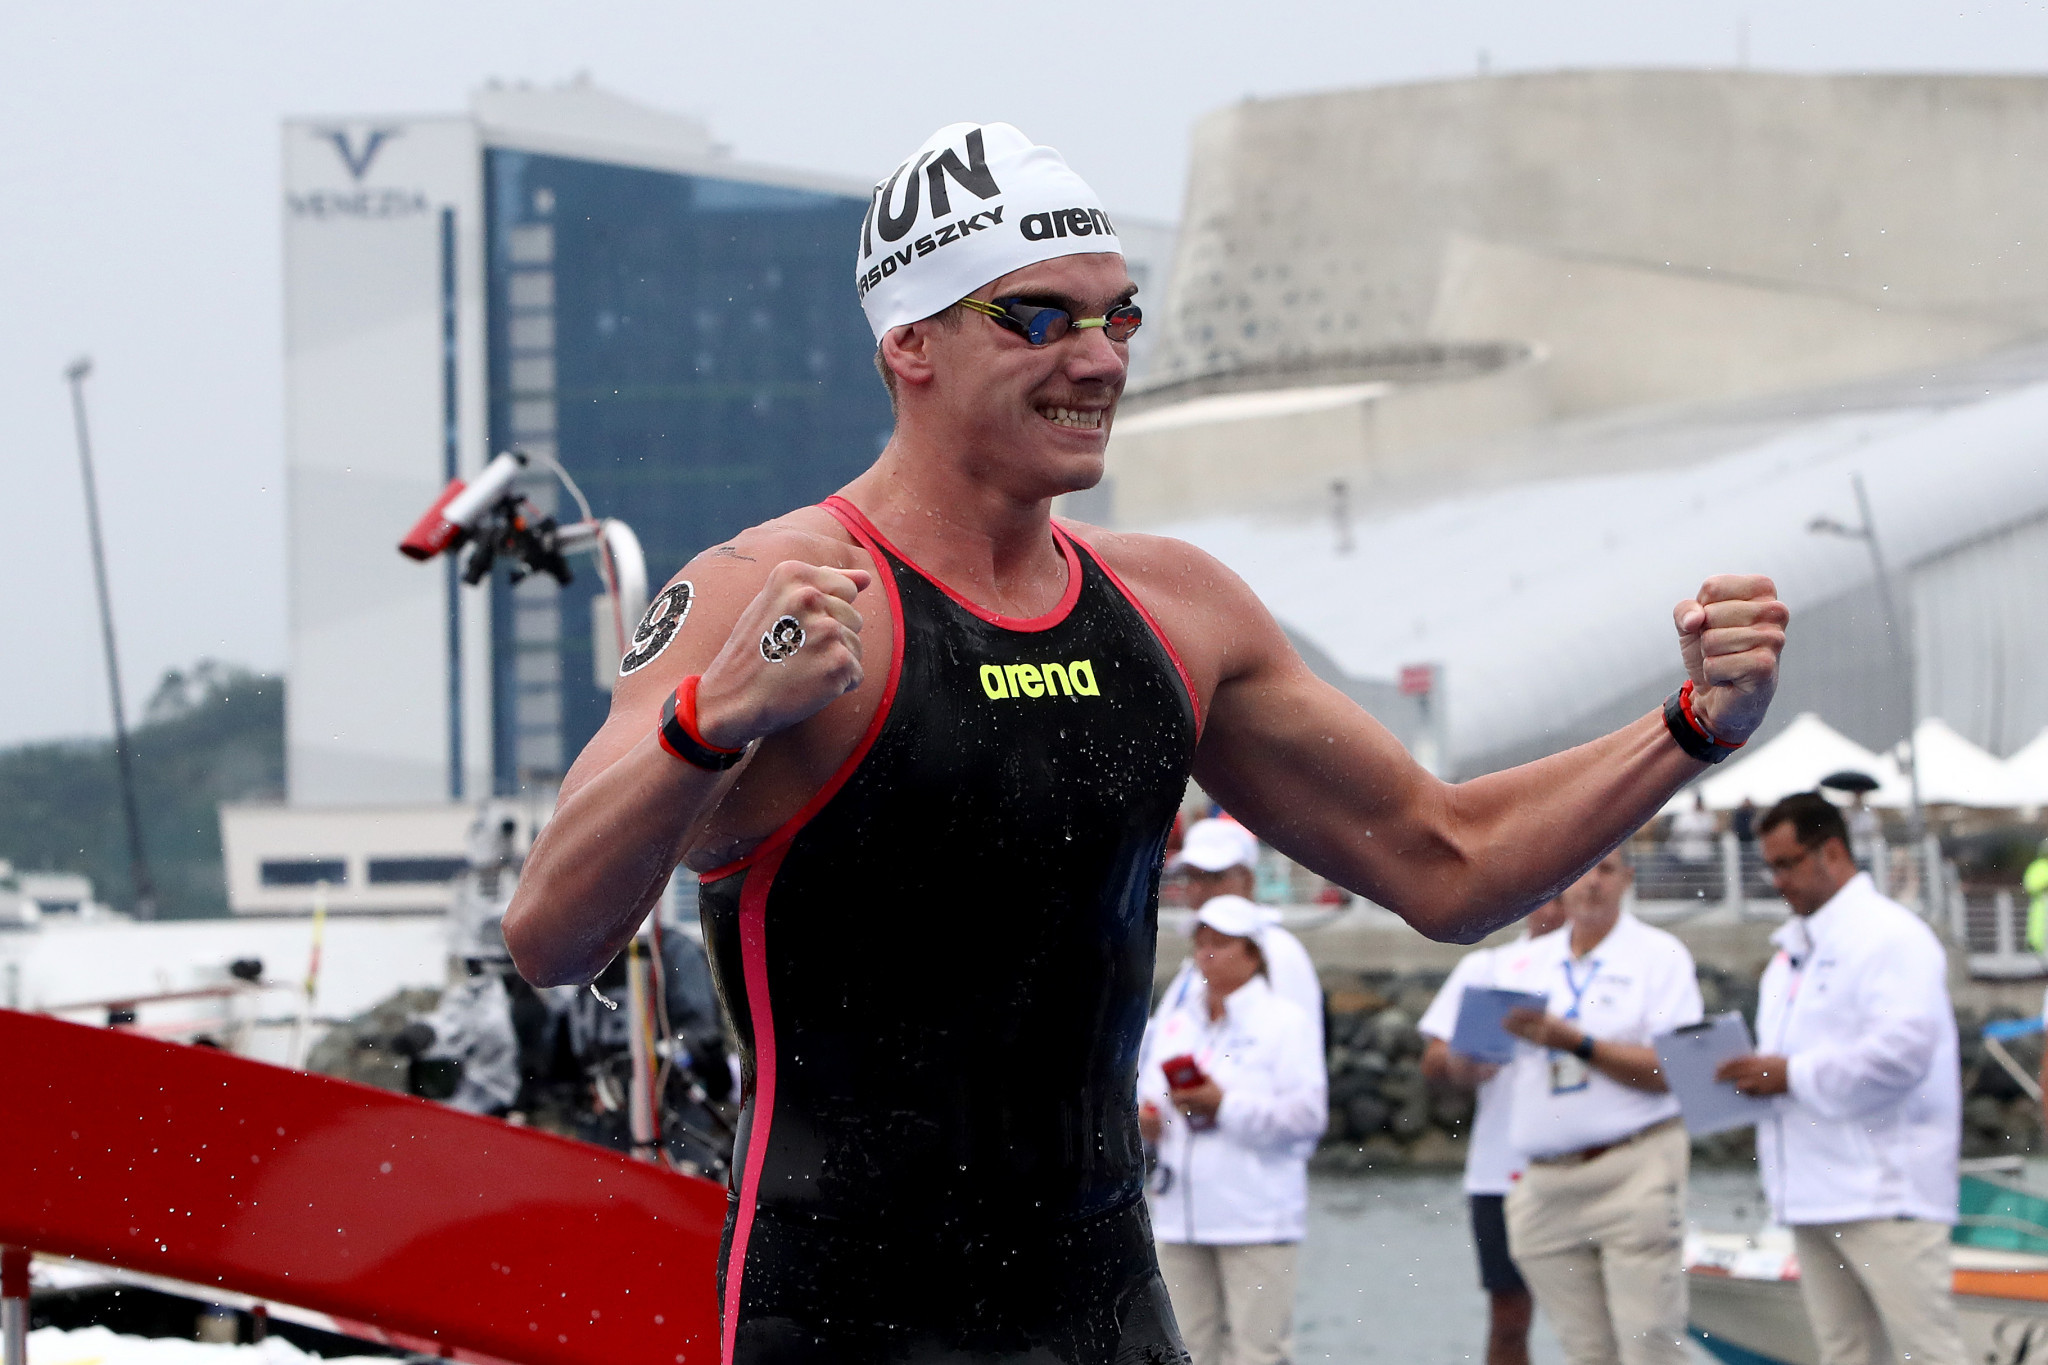 Recently-crowned world champion Rasovszky set to compete at FINA Marathon Swim World Series